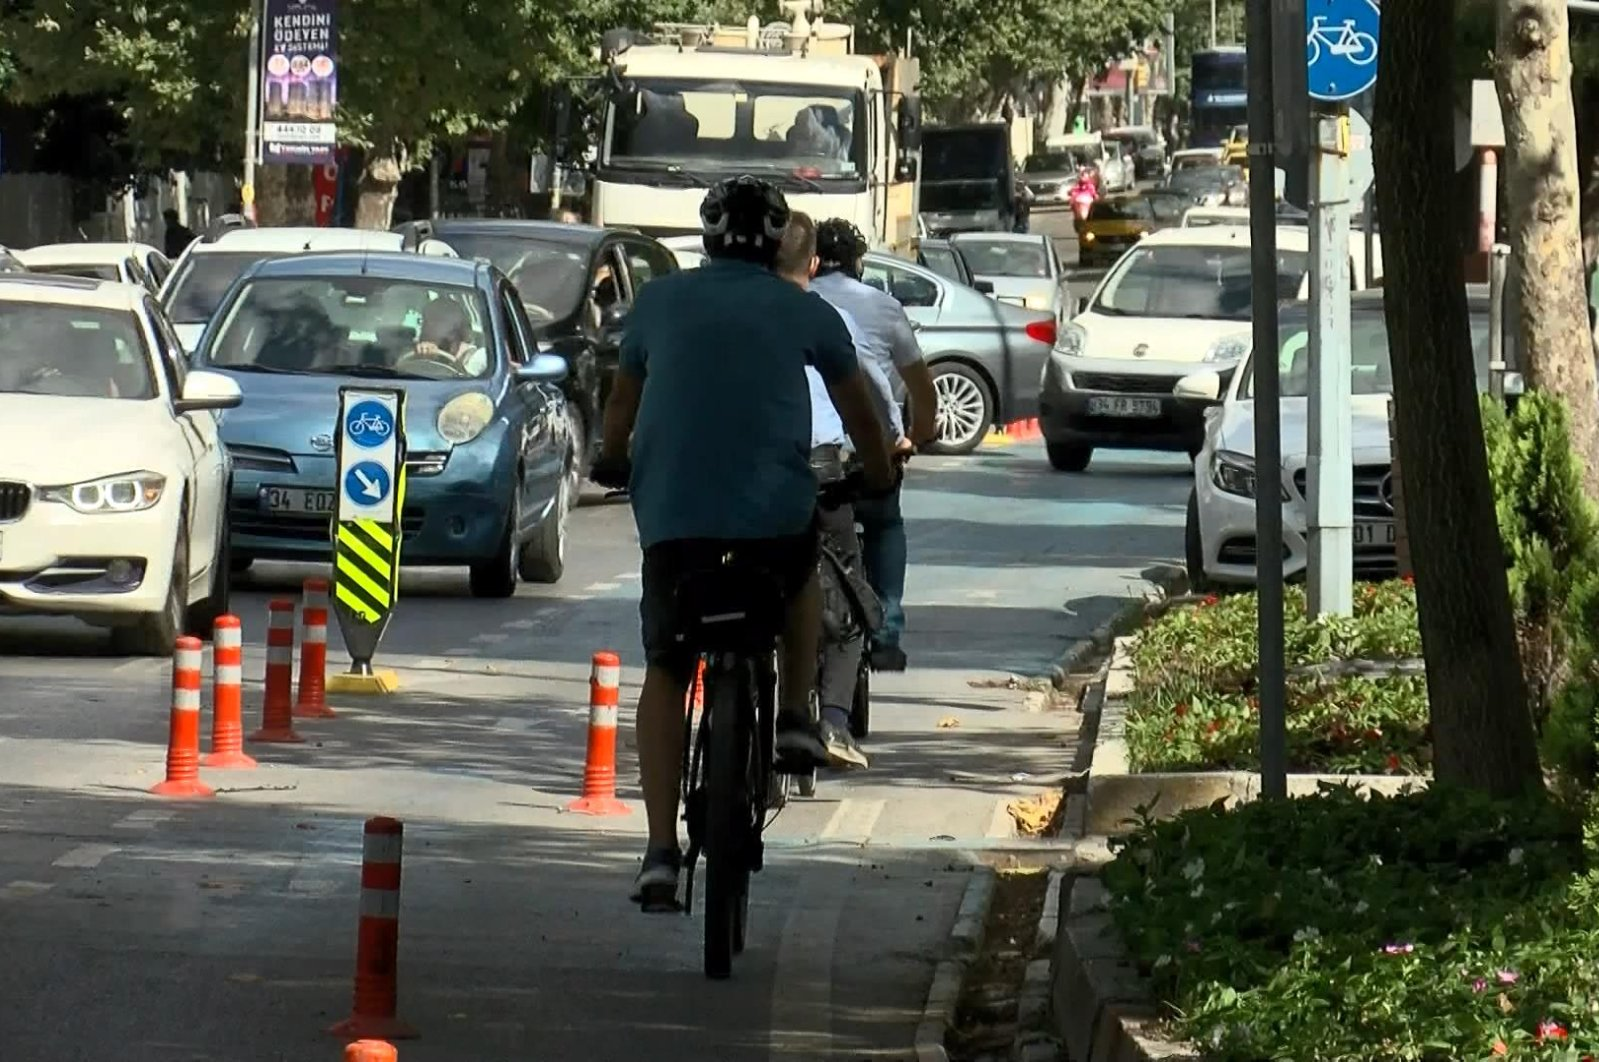 Cyclists in Istanbul use a bike lane that is blocked by a parked car, July 13, 2020. (DHA Photo)